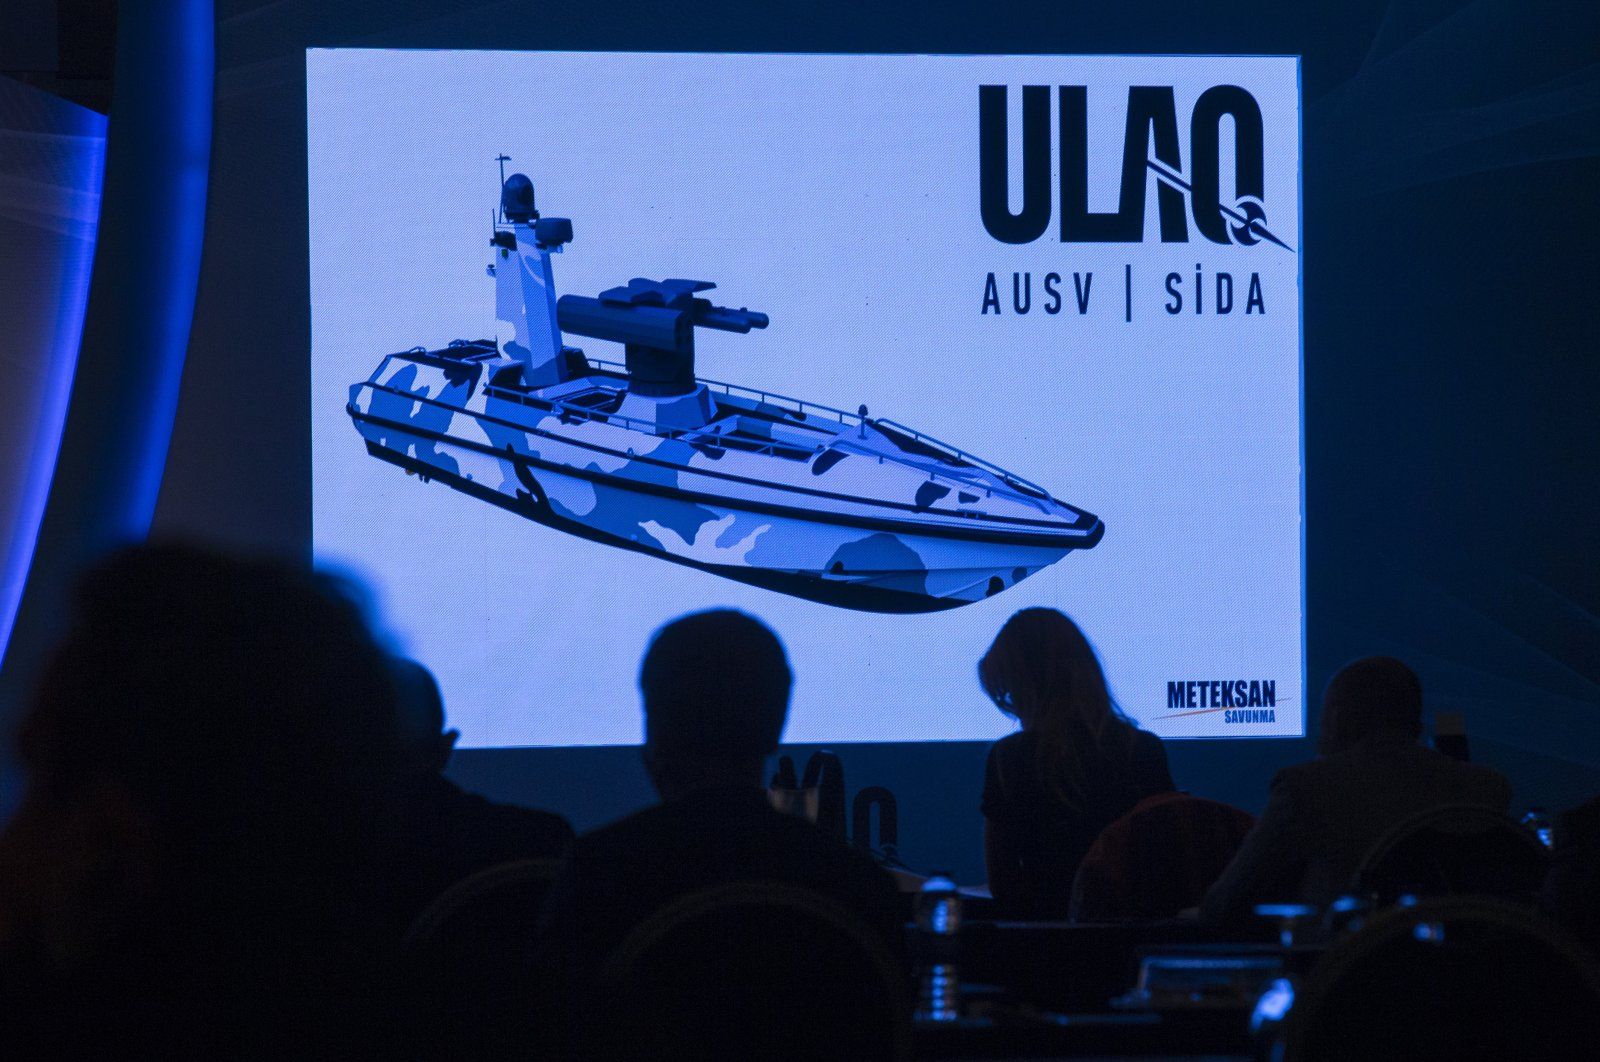 Turkey's first armored unmanned surface vehicle is introduced at a press conference in the capital Ankara, Turkey, Oct. 28, 2020. (AA Photo)